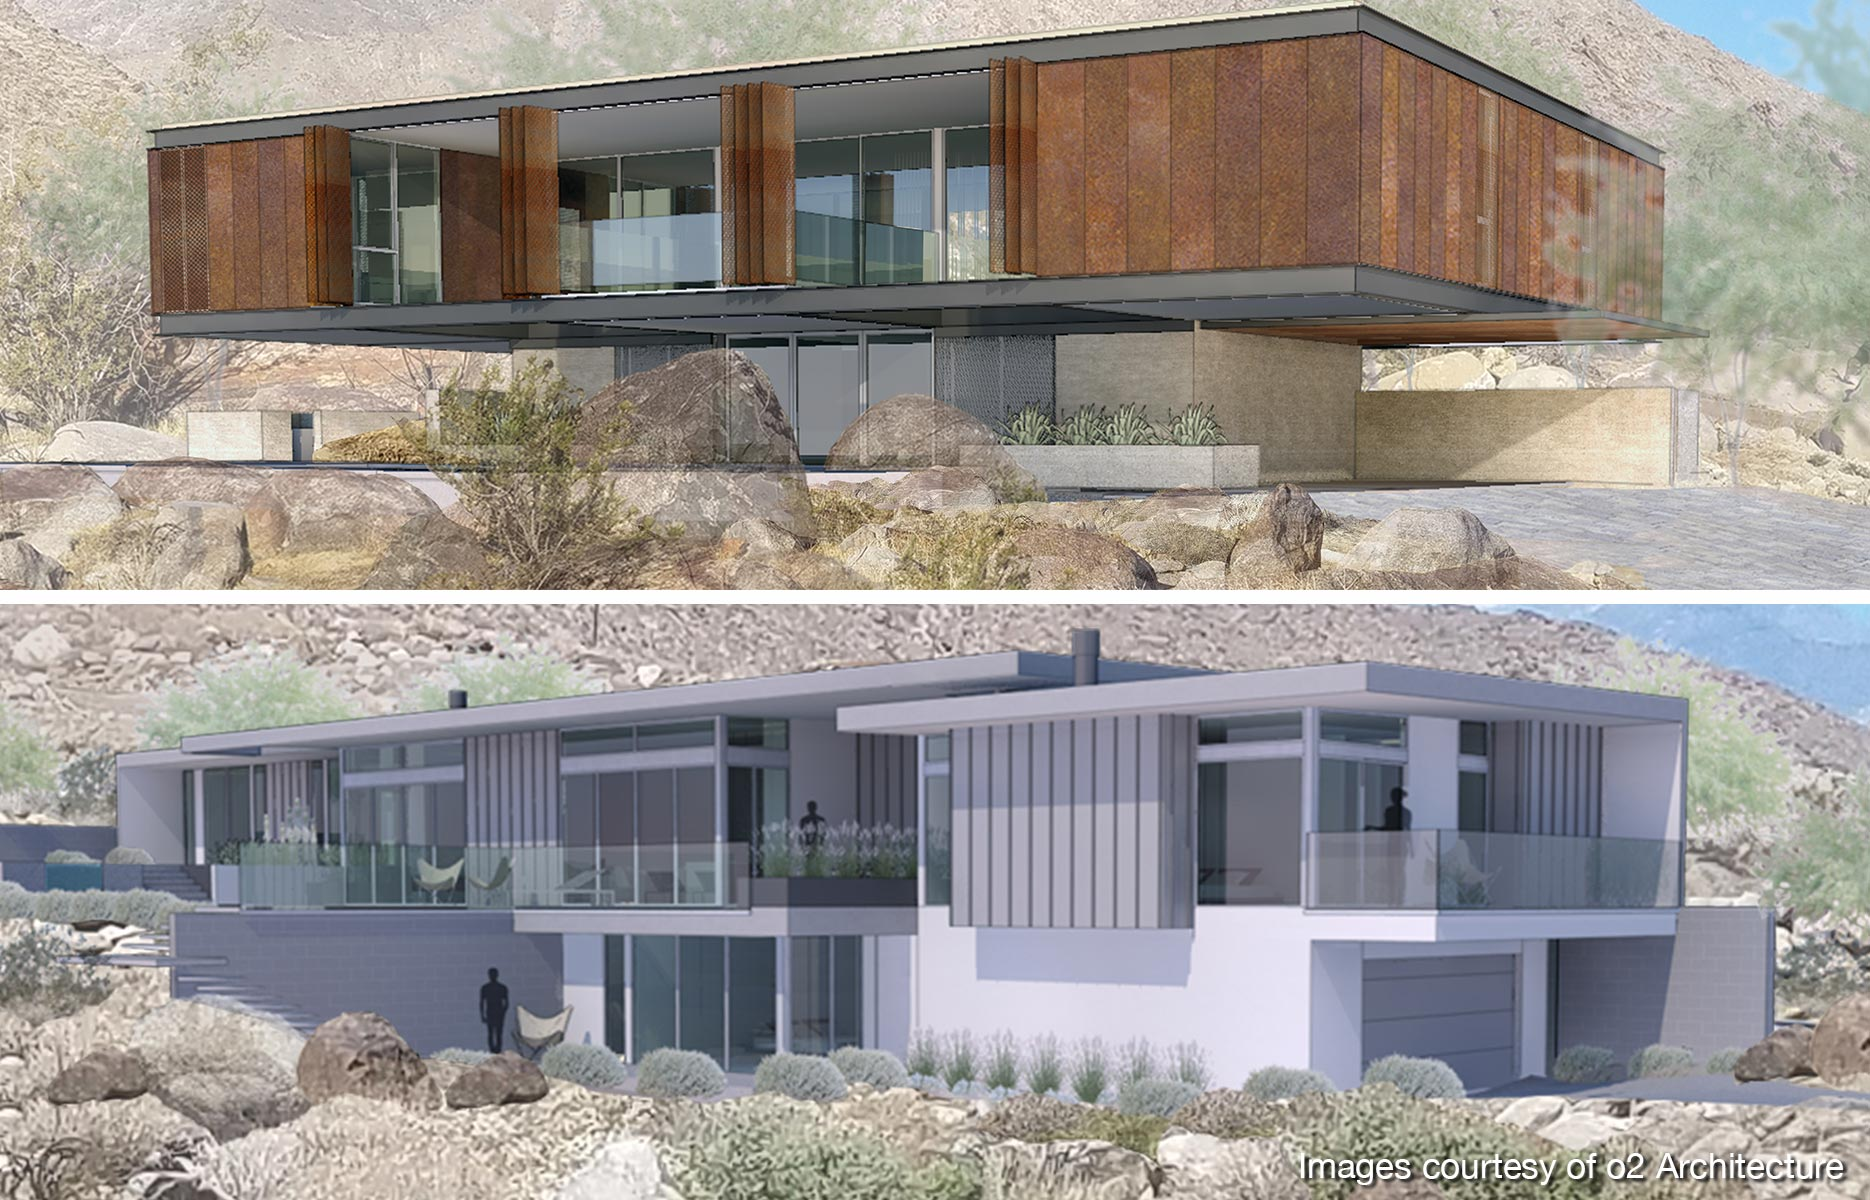 Western Window Systems Products to Appear in Two Homes Featured During Palm Springs' Modernism Week